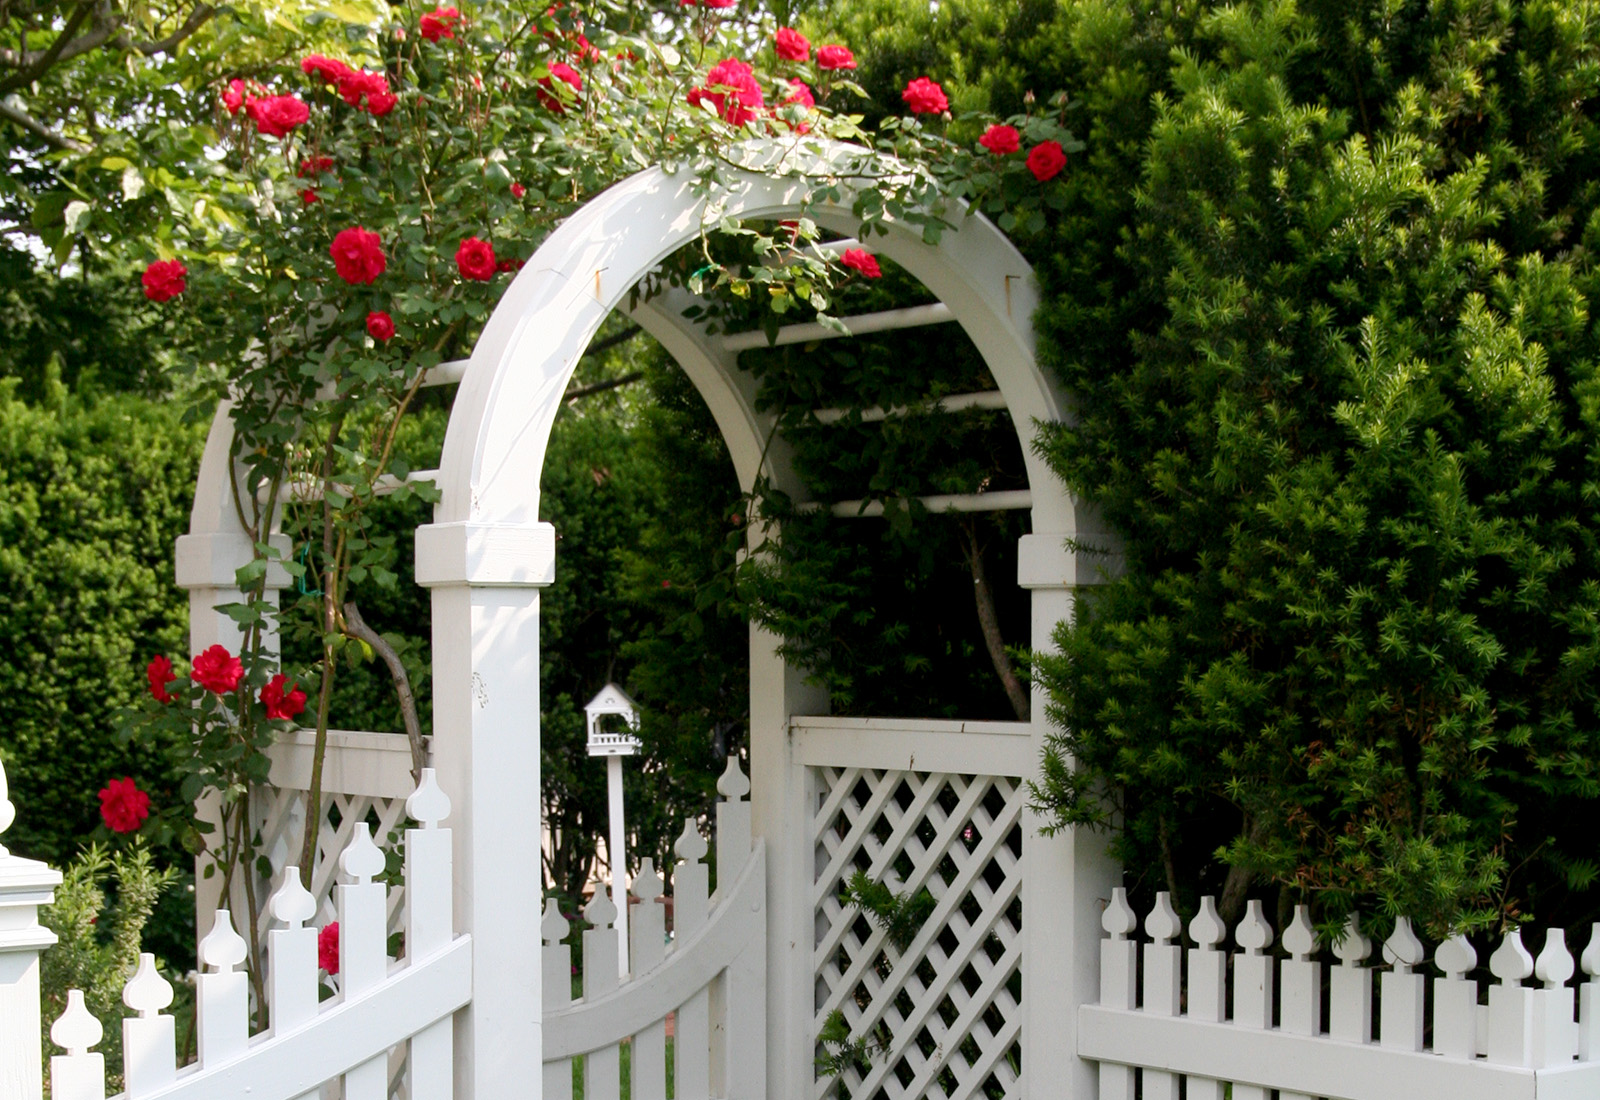 Arbor garden covered with bright red roses.